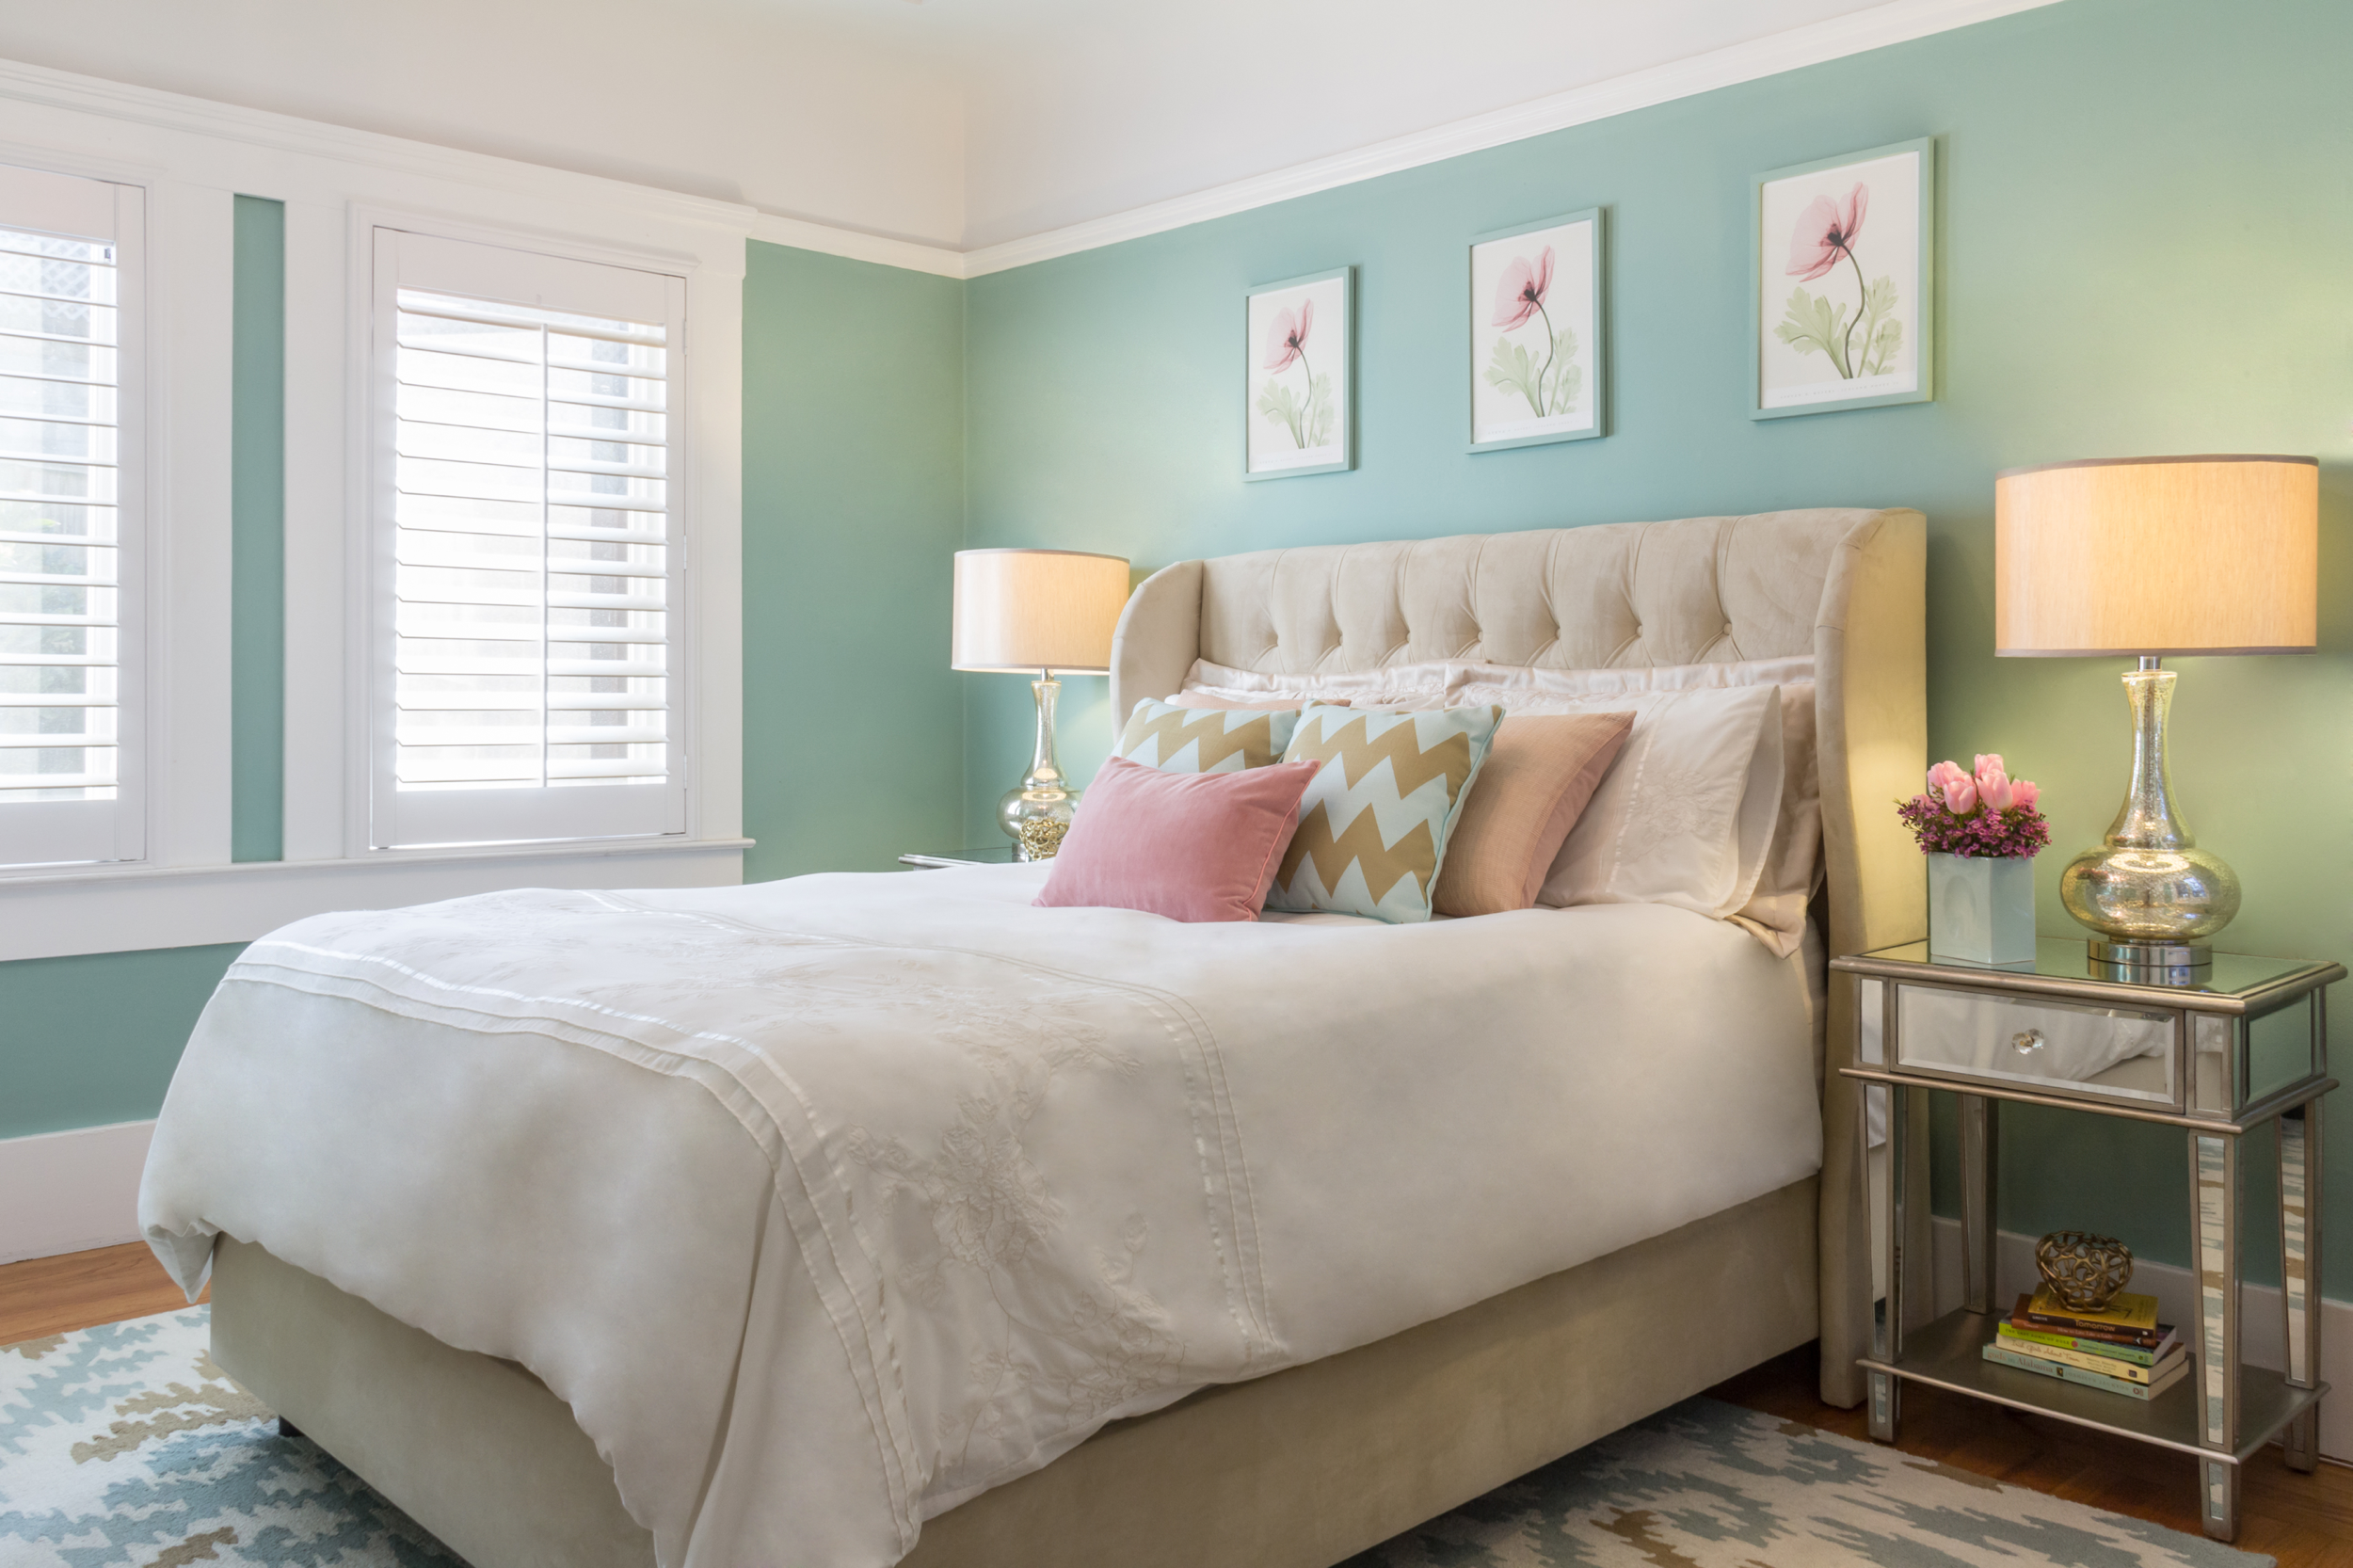 Bedroom with pops of green and pink to give vibrancy and feminine flair